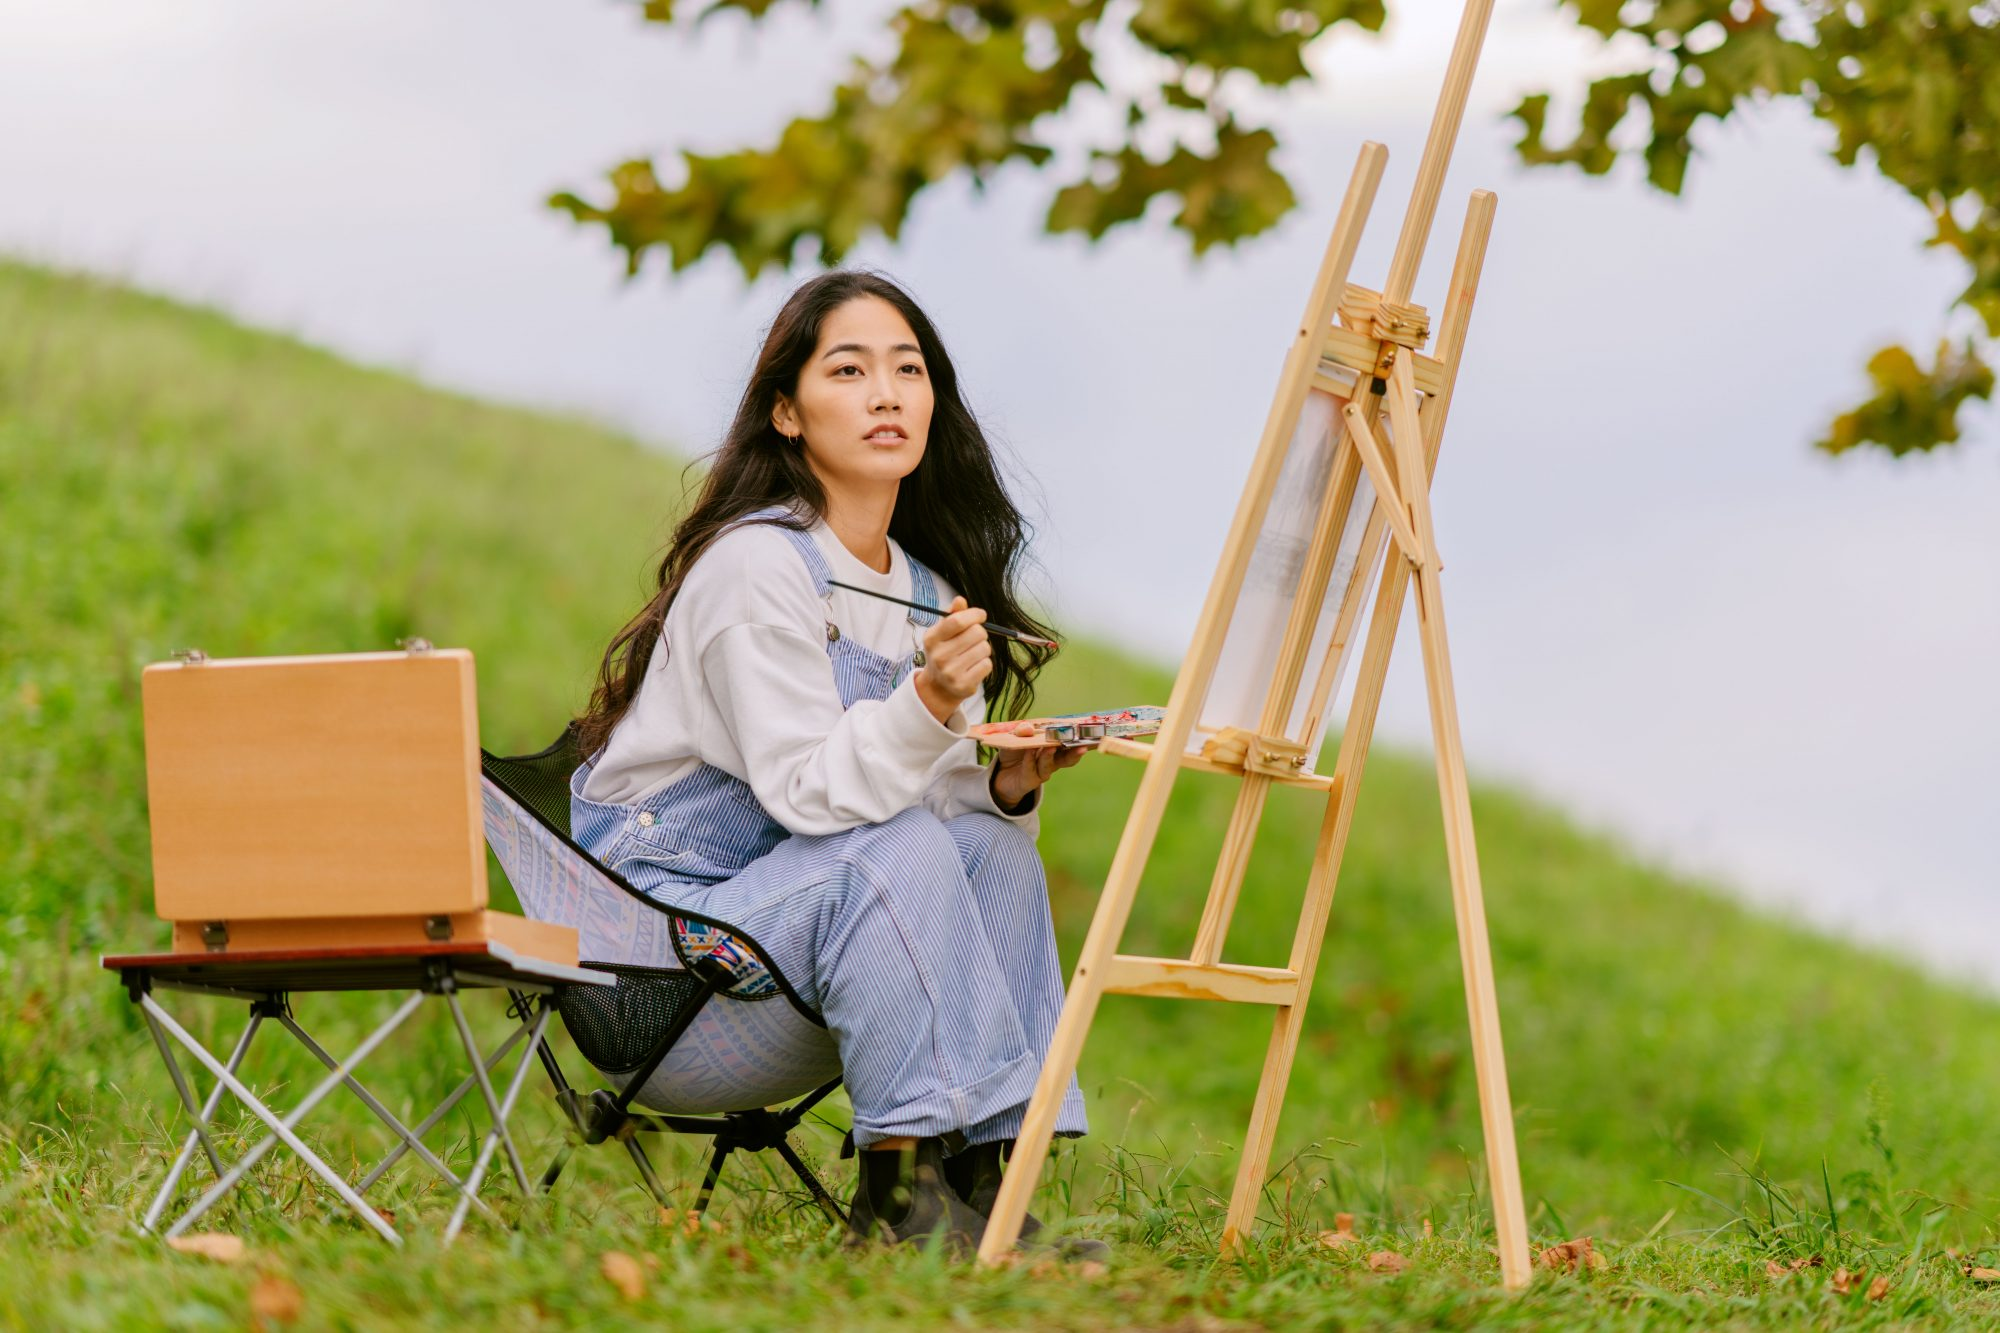 artist painting on canvas outdoors in field